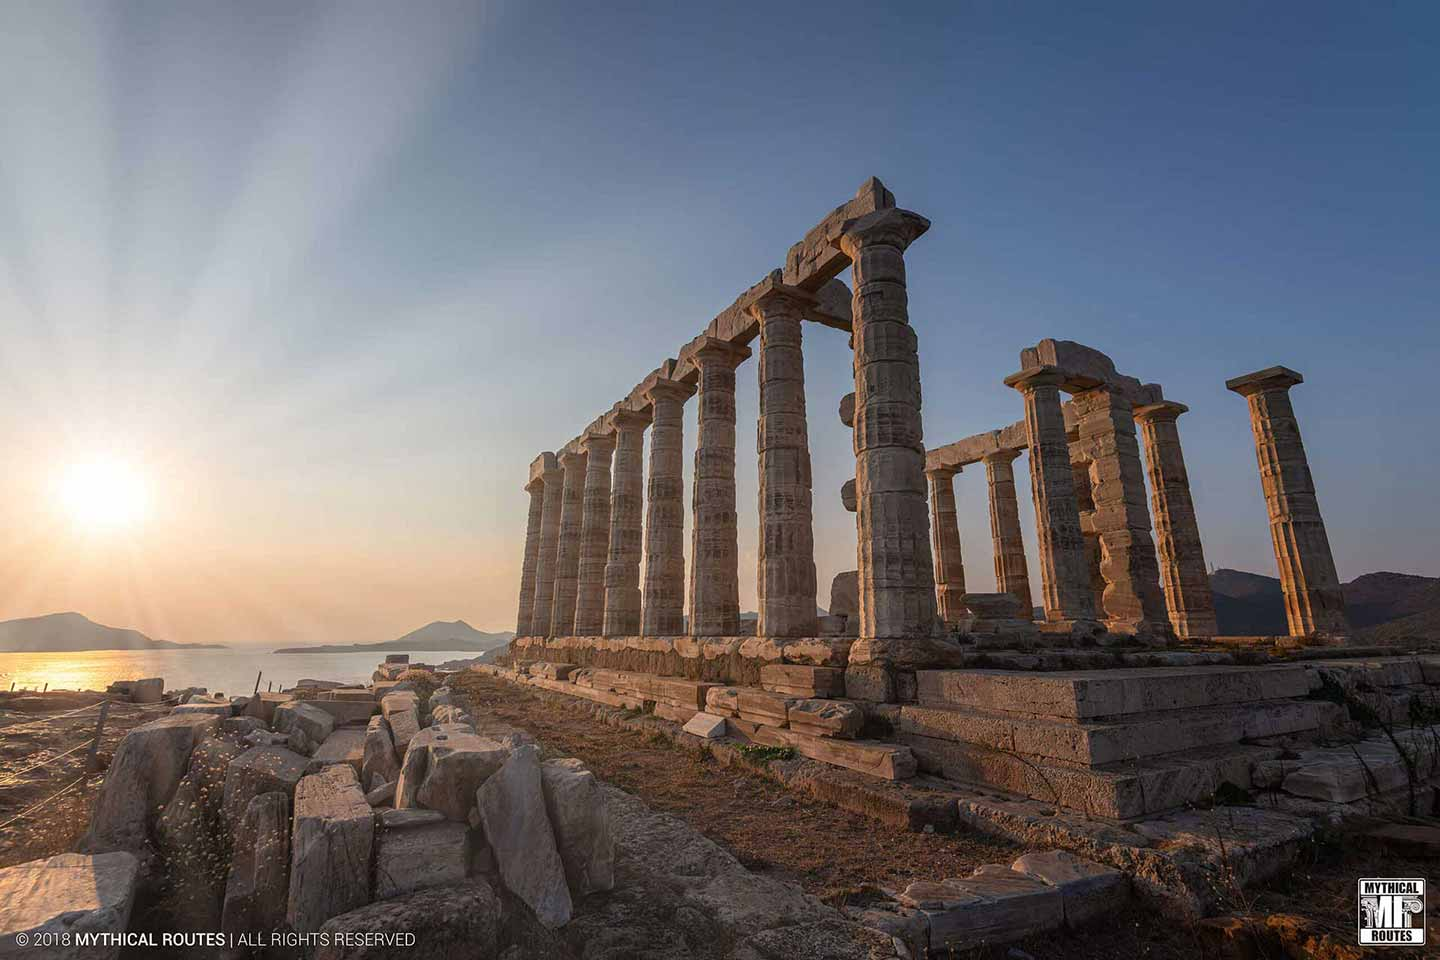 Mythical Routes Sounio Temple